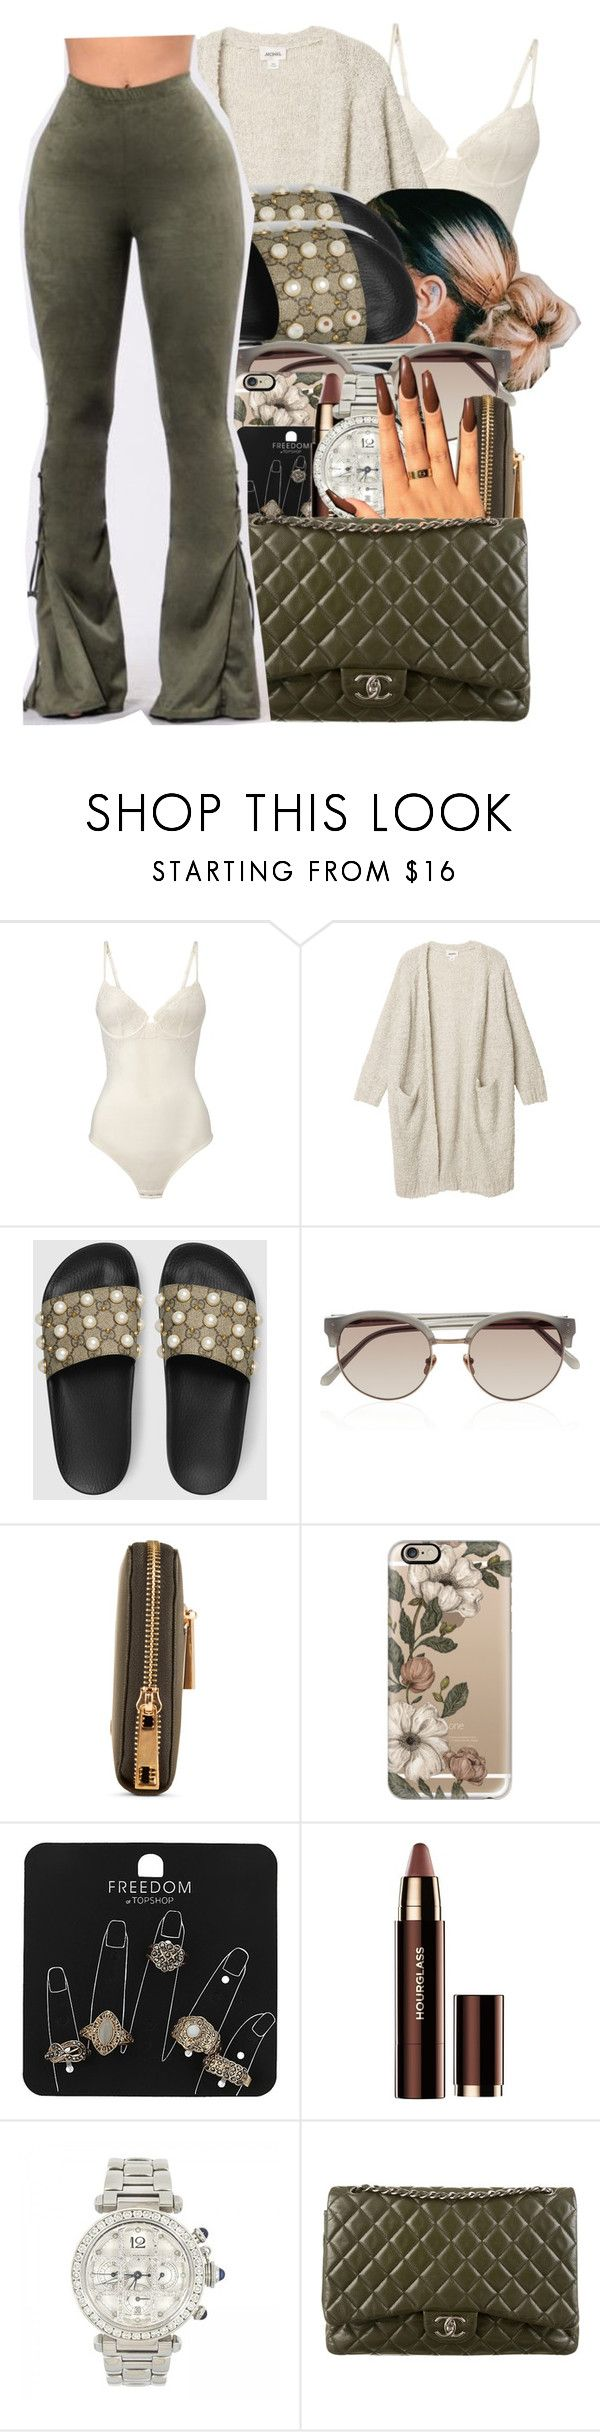 """class '17"" by finesseprincess ❤ liked on Polyvore featuring La Perla, Monki, Gucci, Linda Farrow, Casetify, Topshop, Hourglass Cosmetics, Cartier, Chanel and GET LOST"